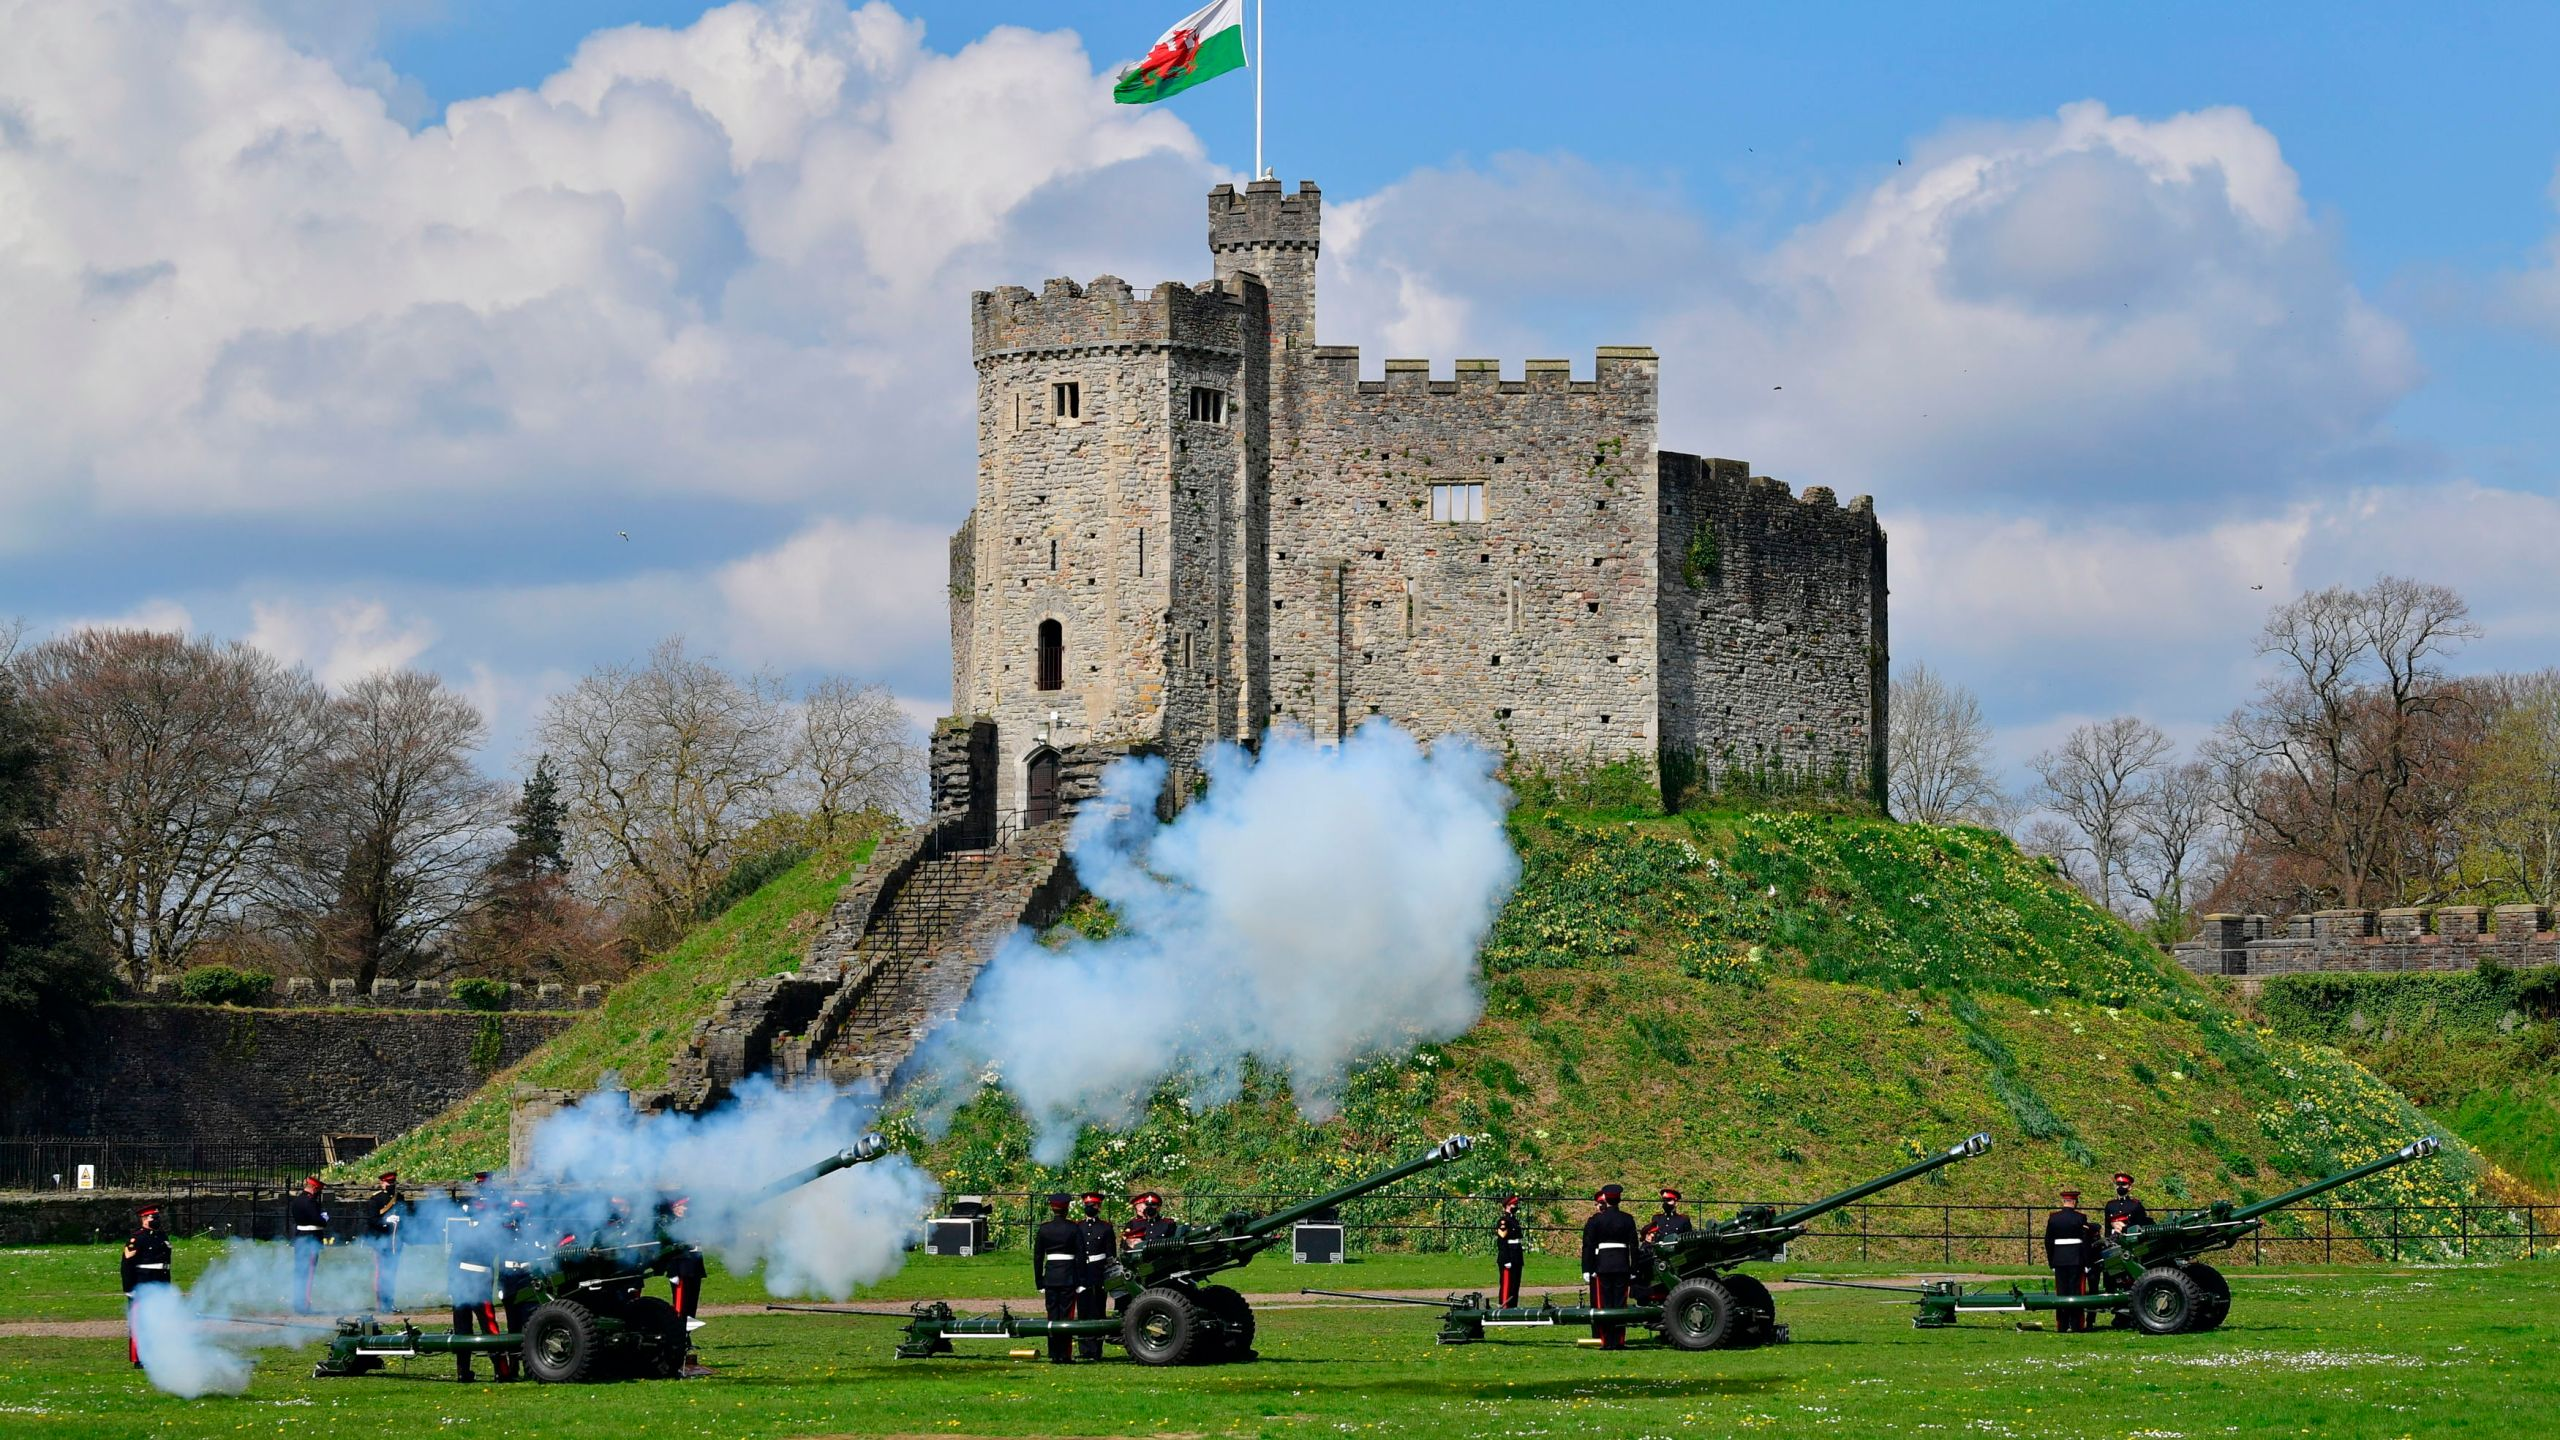 Members of the 104th Regiment Royal Artillery fire a 41-round gun salute in the grounds of Cardiff Castle, to mark the death of Prince Philip, in Cardiff, Saturday, April 10, 2021. (Ben Birchall/PA via AP)